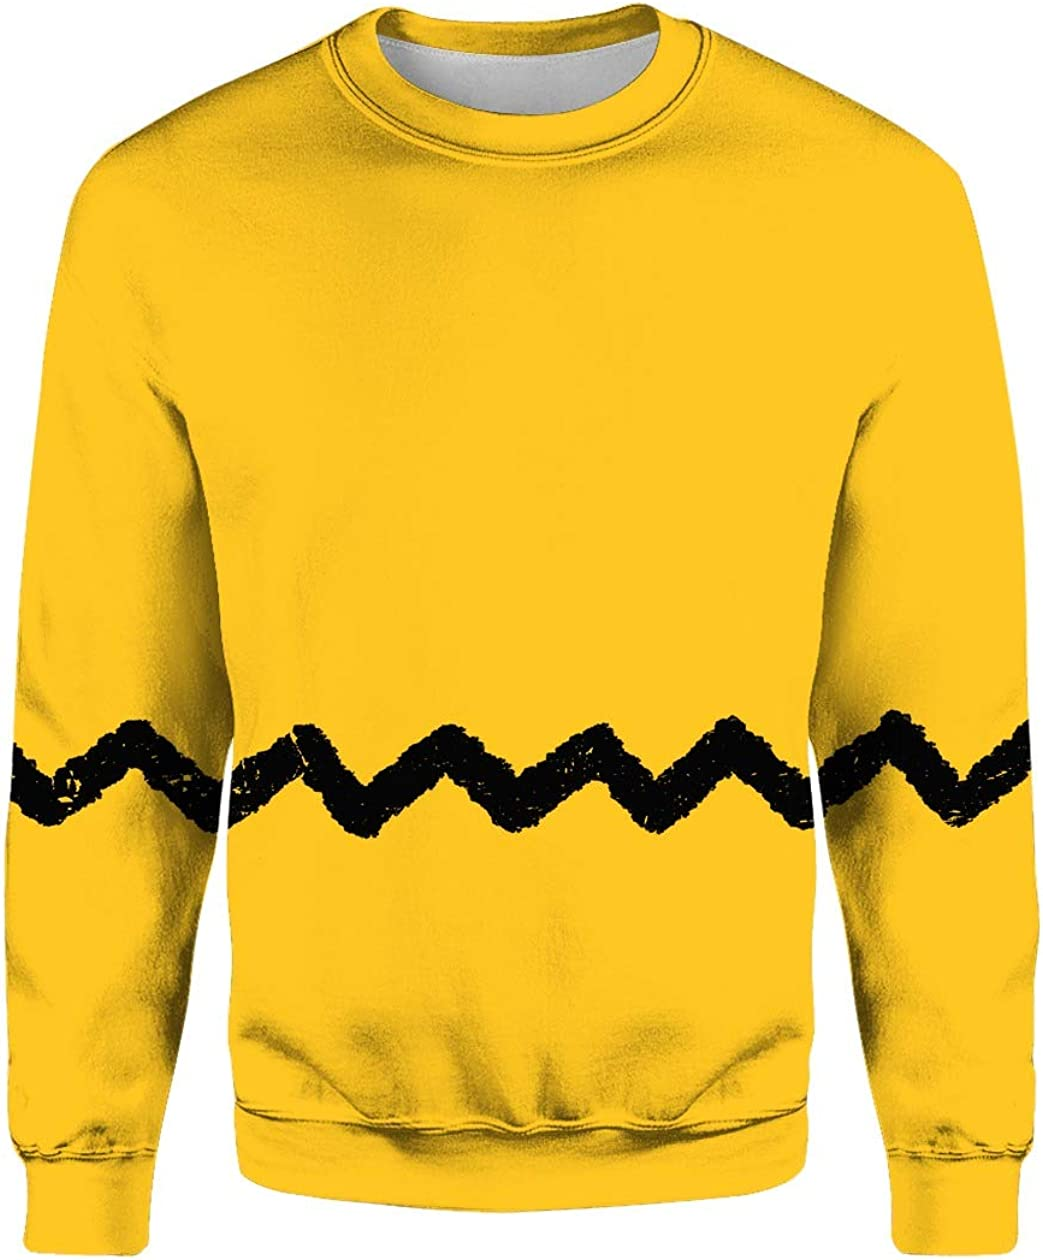 BEE TEE Charlie Brown Yellow Shirt with A Black Zigzag 3D All Over Sublimation Printing Shirt